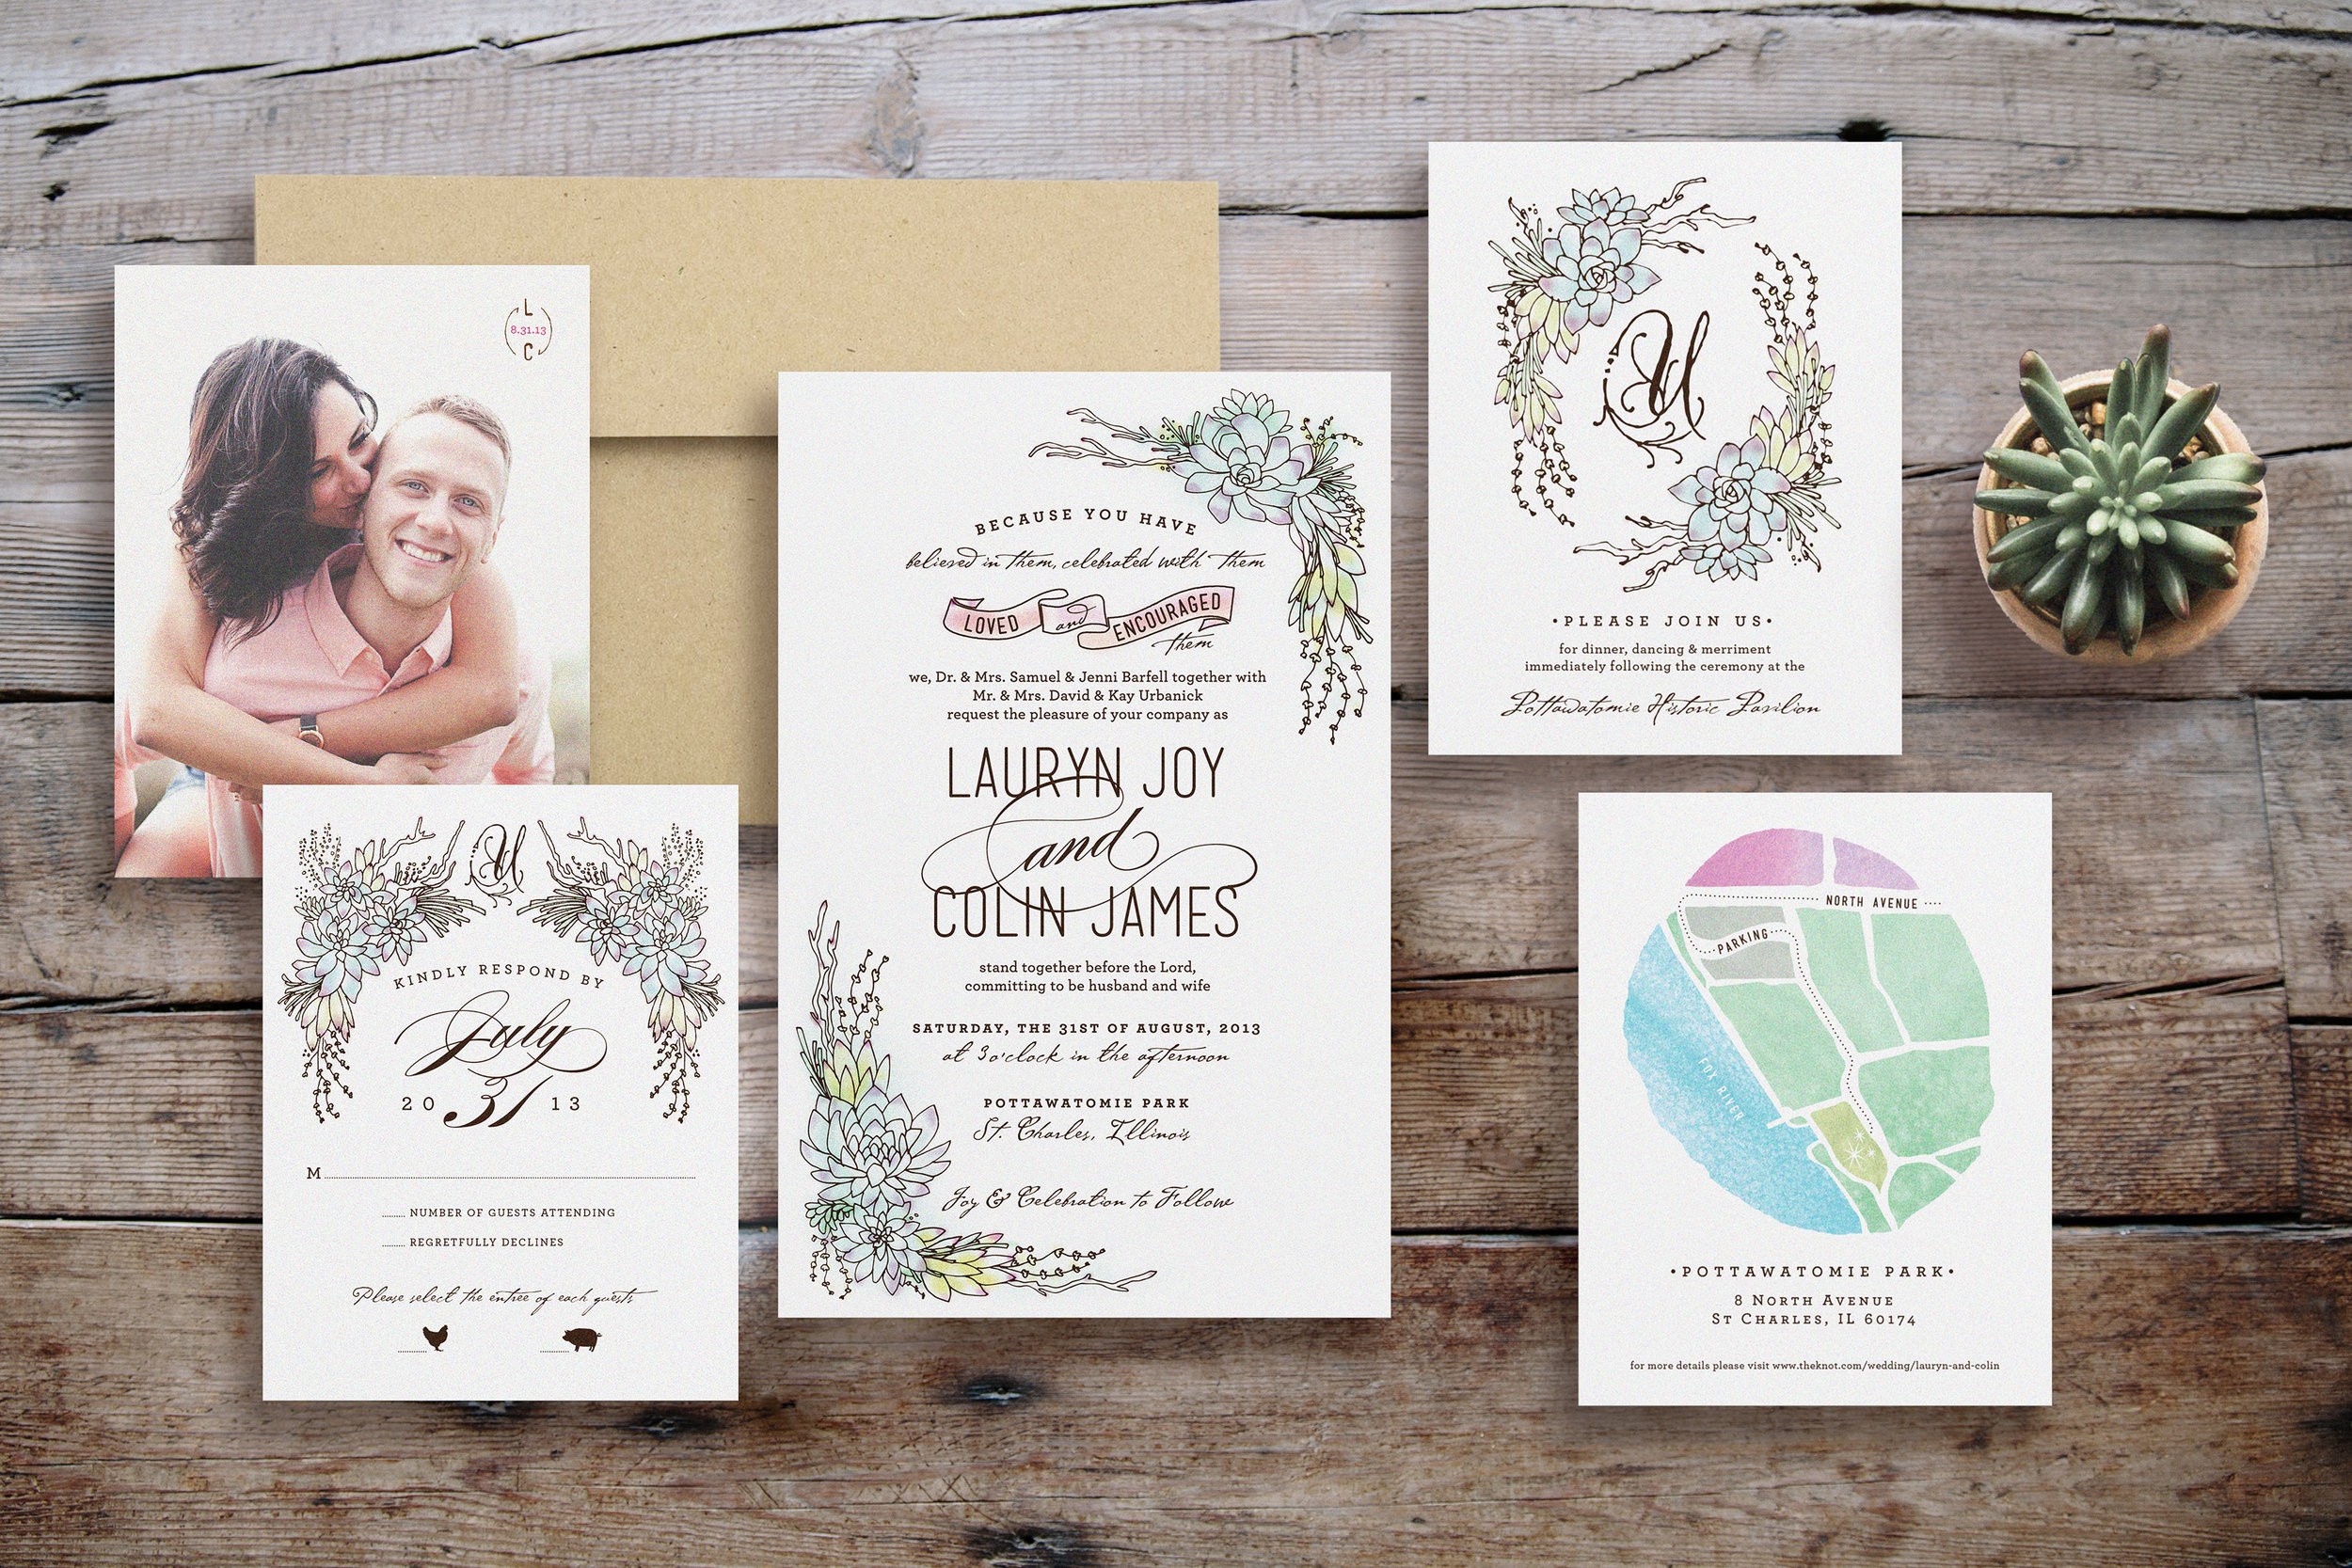 C & L Wedding Invite — KAYE LEE PATTON